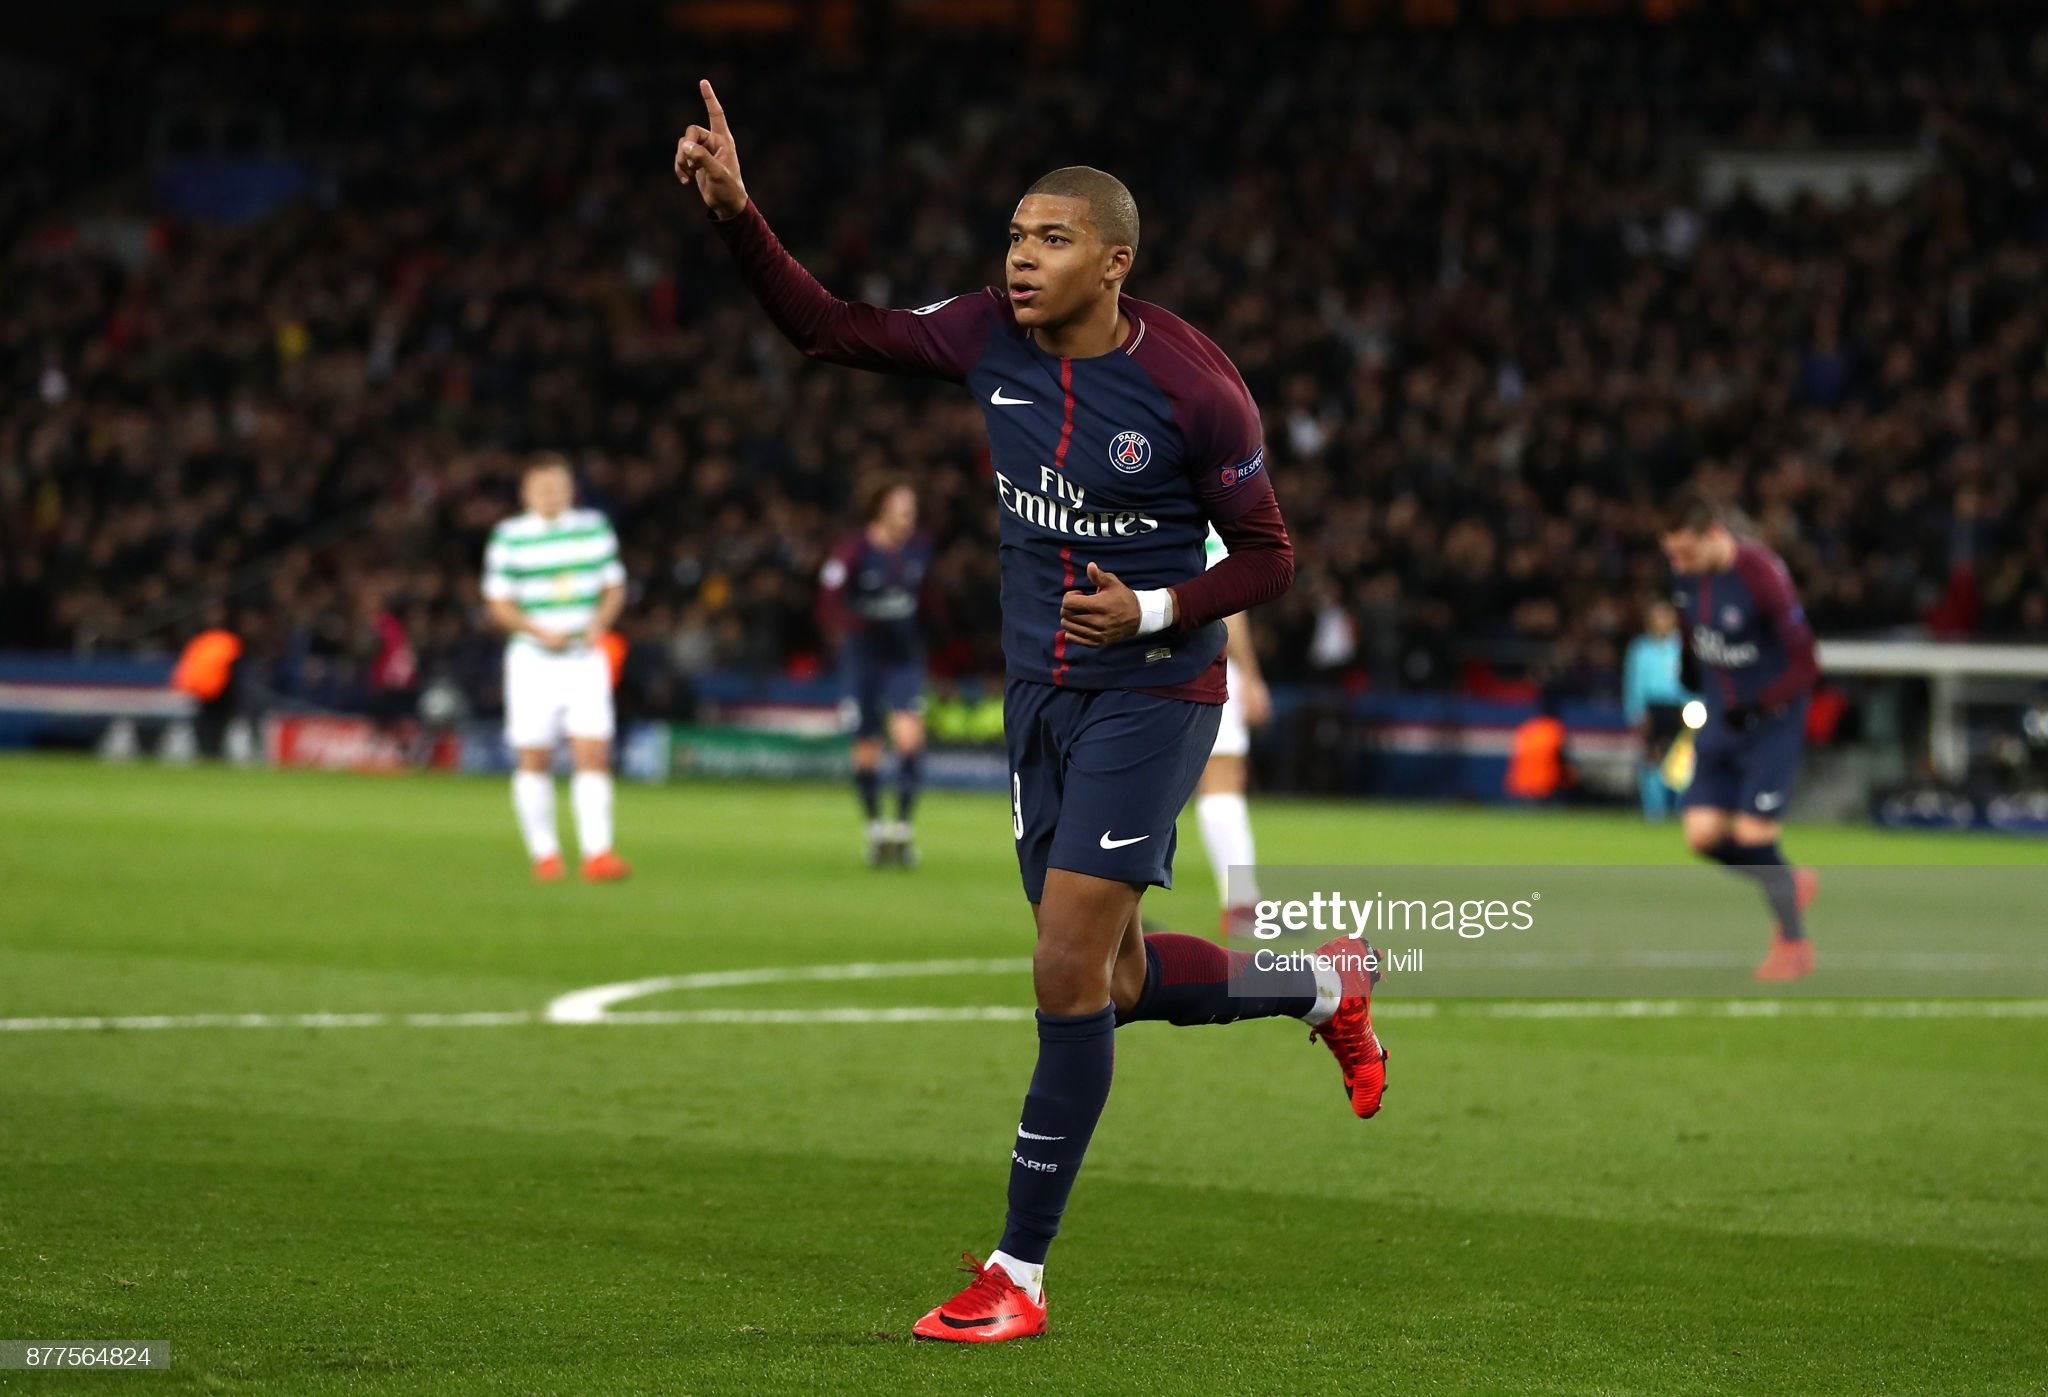 Paris Saint-Germain v Celtic FC - UEFA Champions League : News Photo